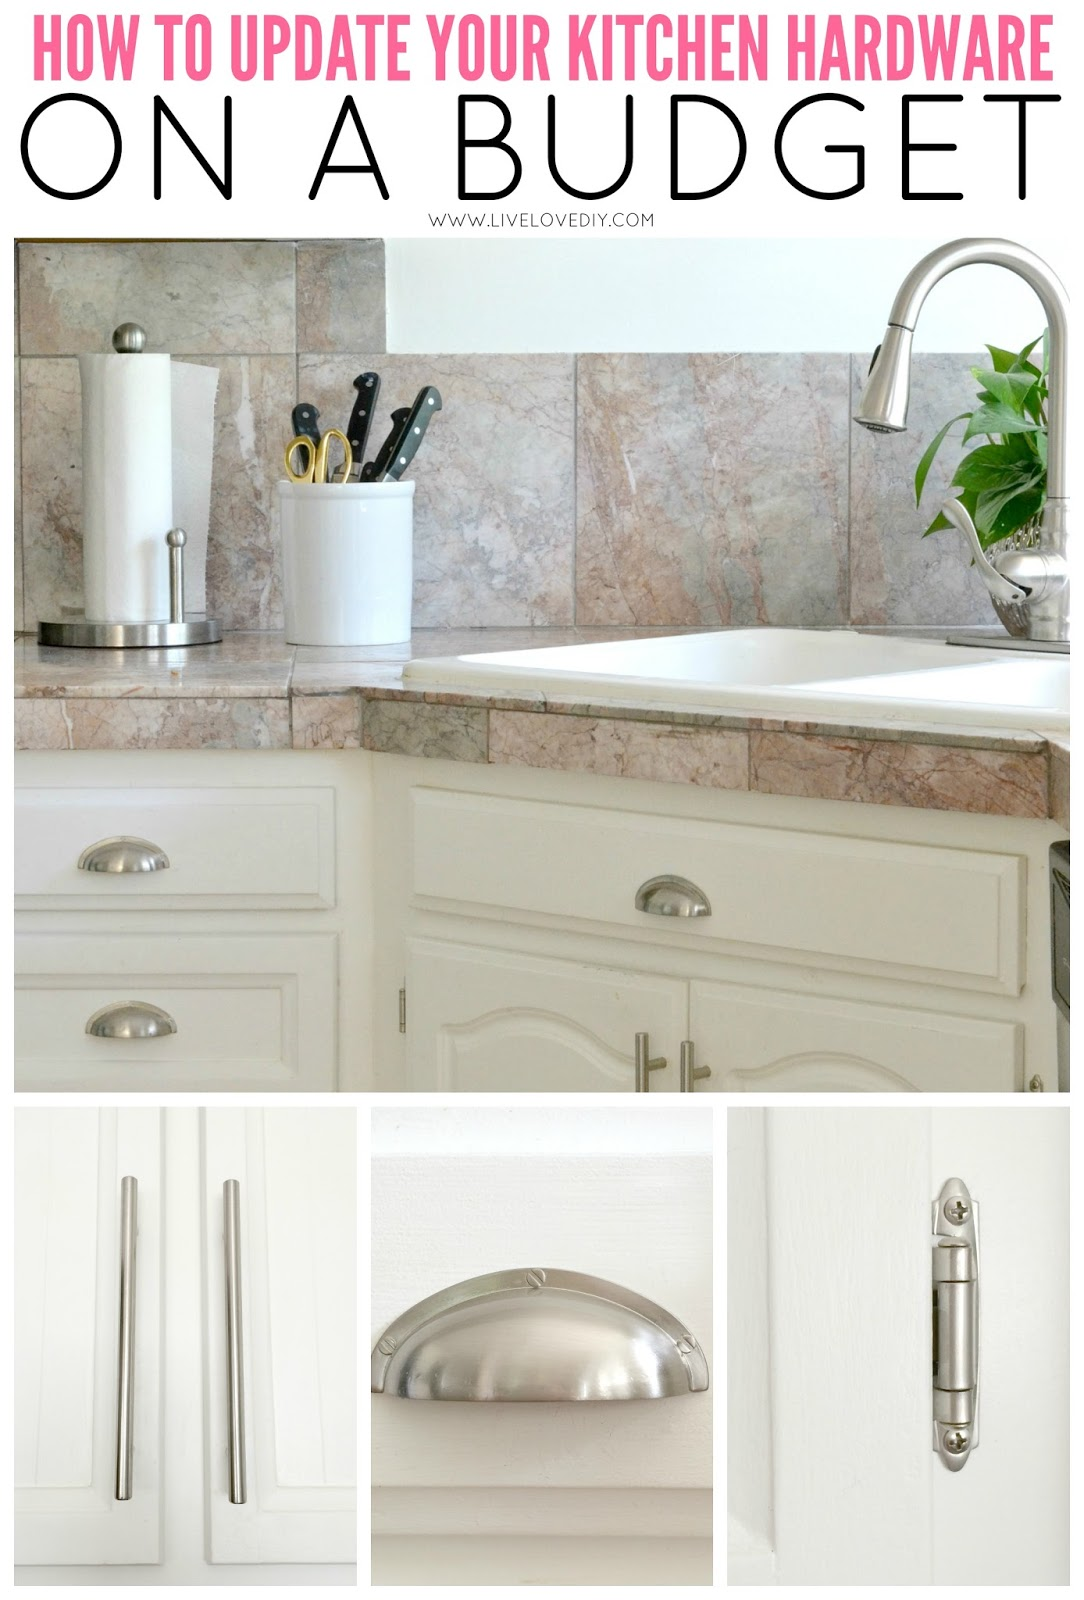 Livelovediy how to paint kitchen cabinets in 10 easy steps for Kitchen cabinets handles ideas